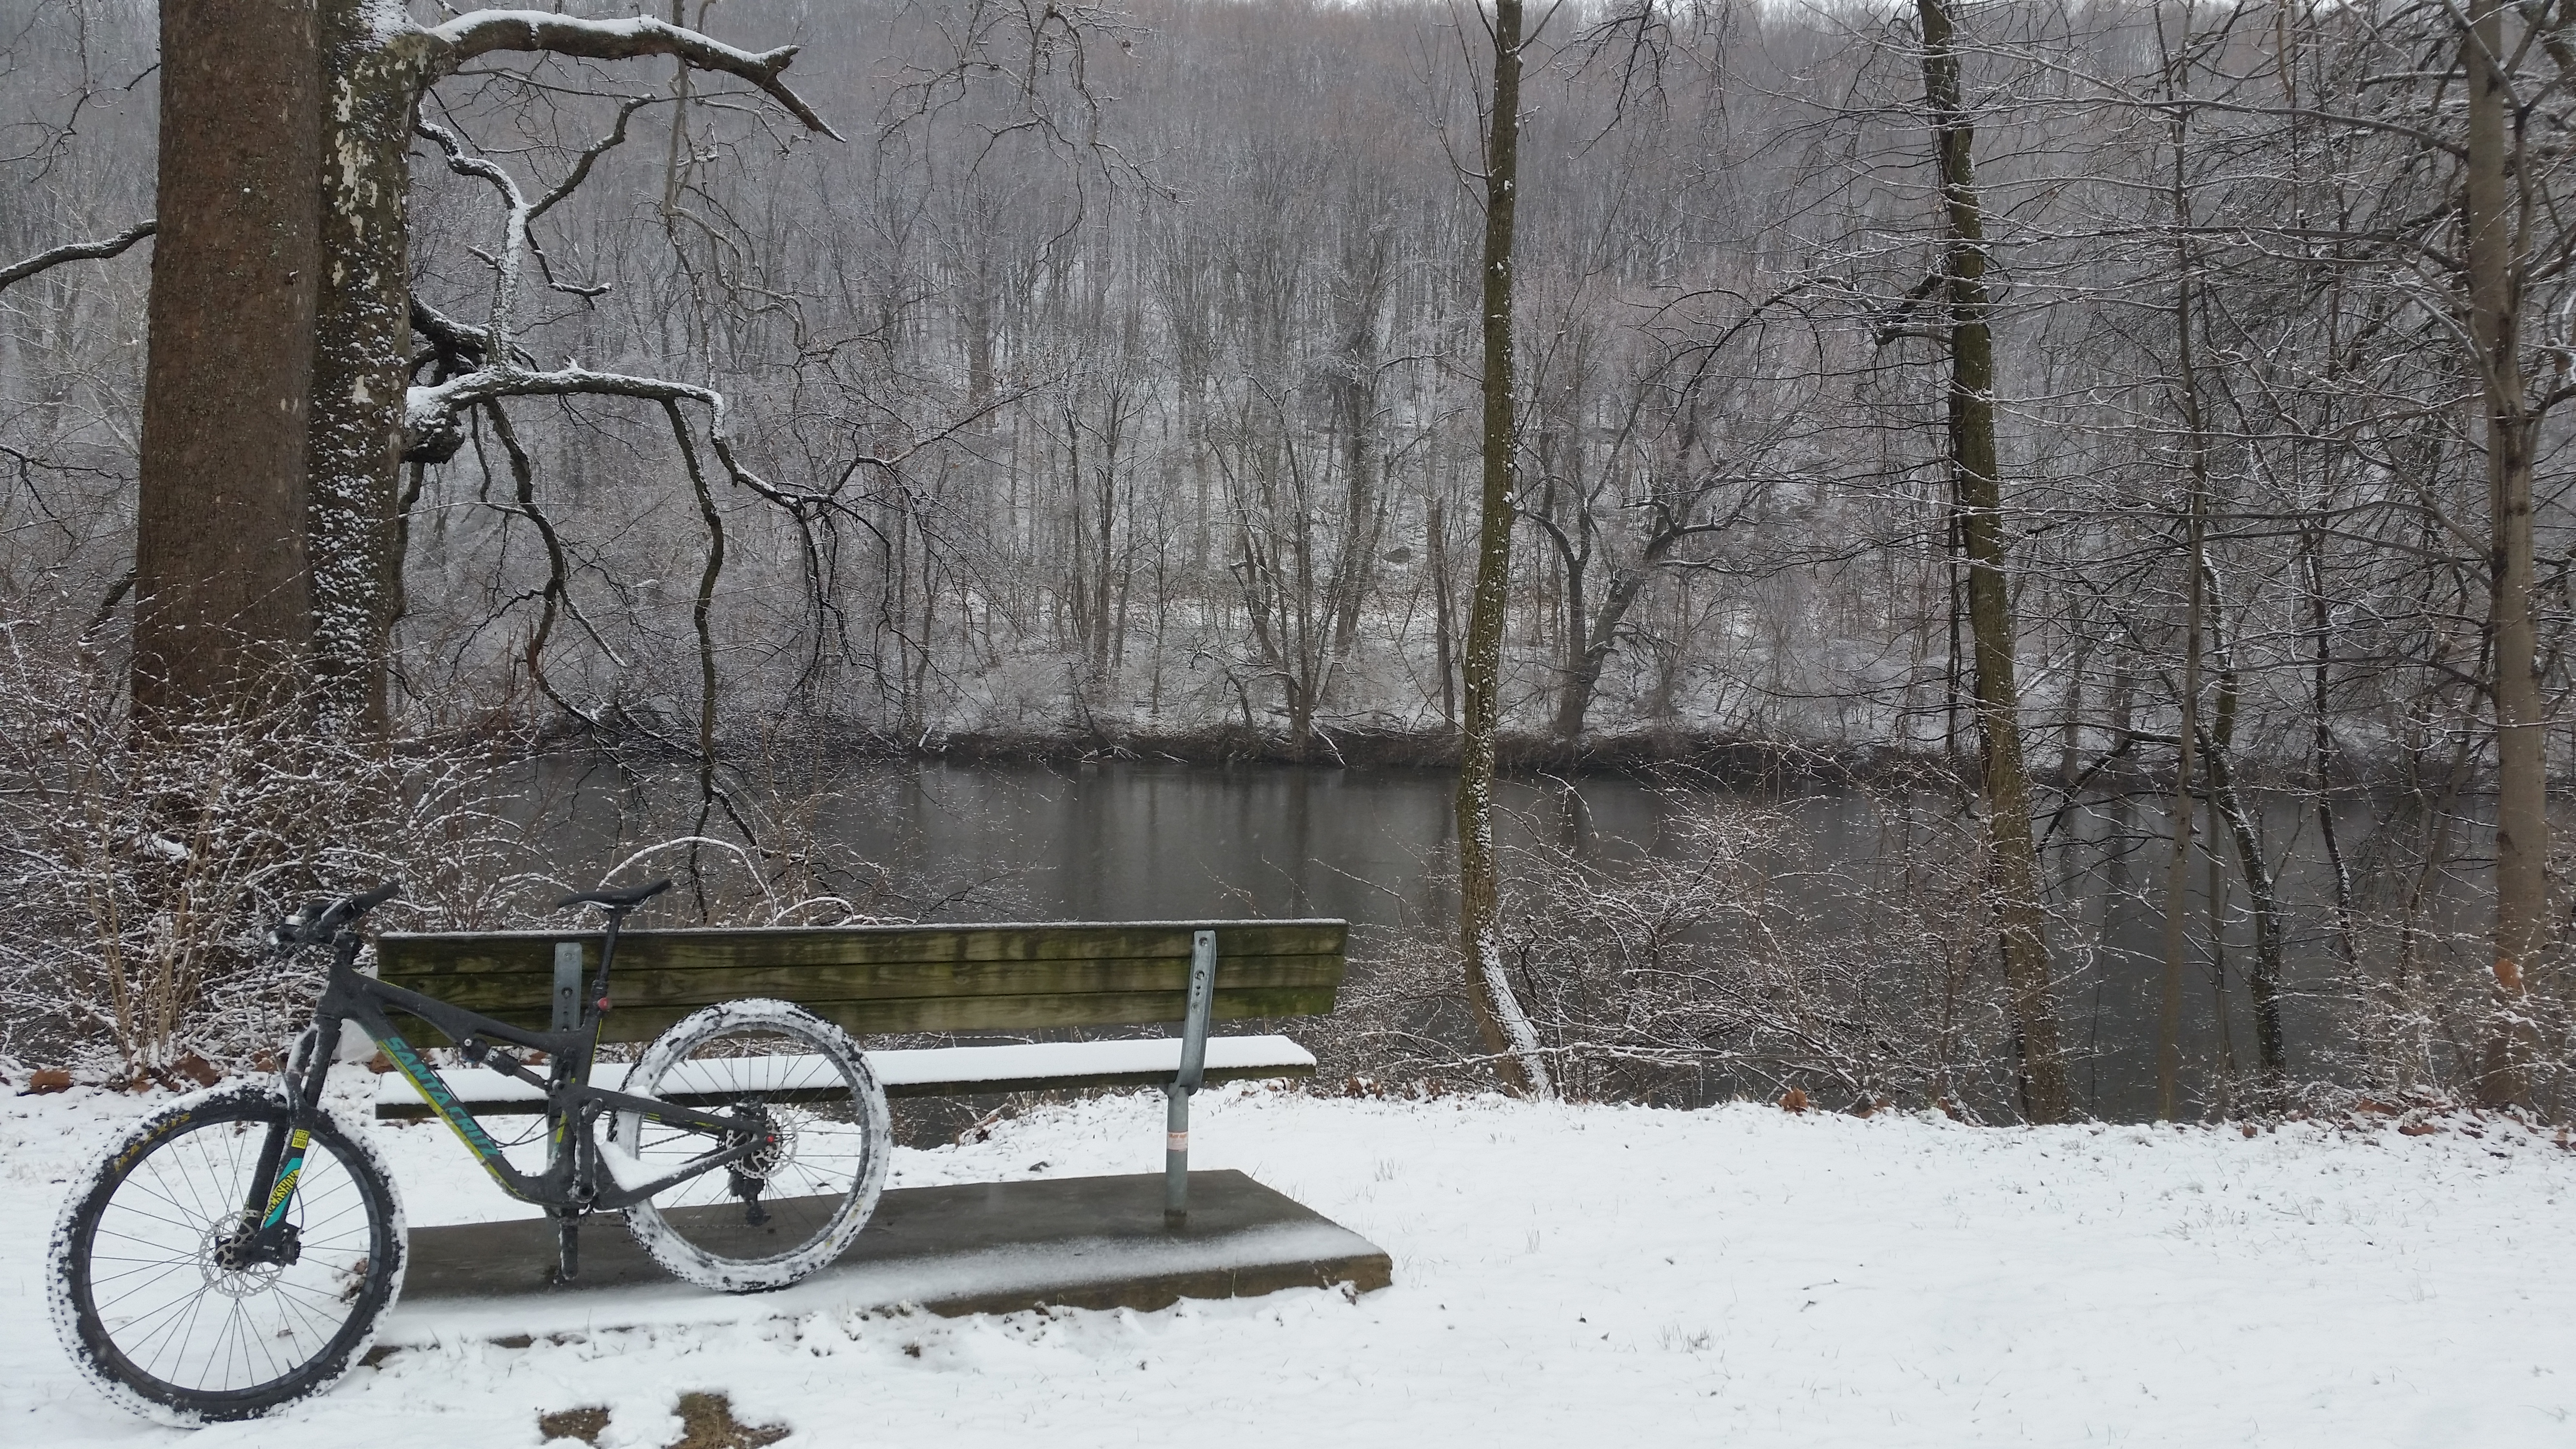 bike leans on a bench. with river and snowy woods in background